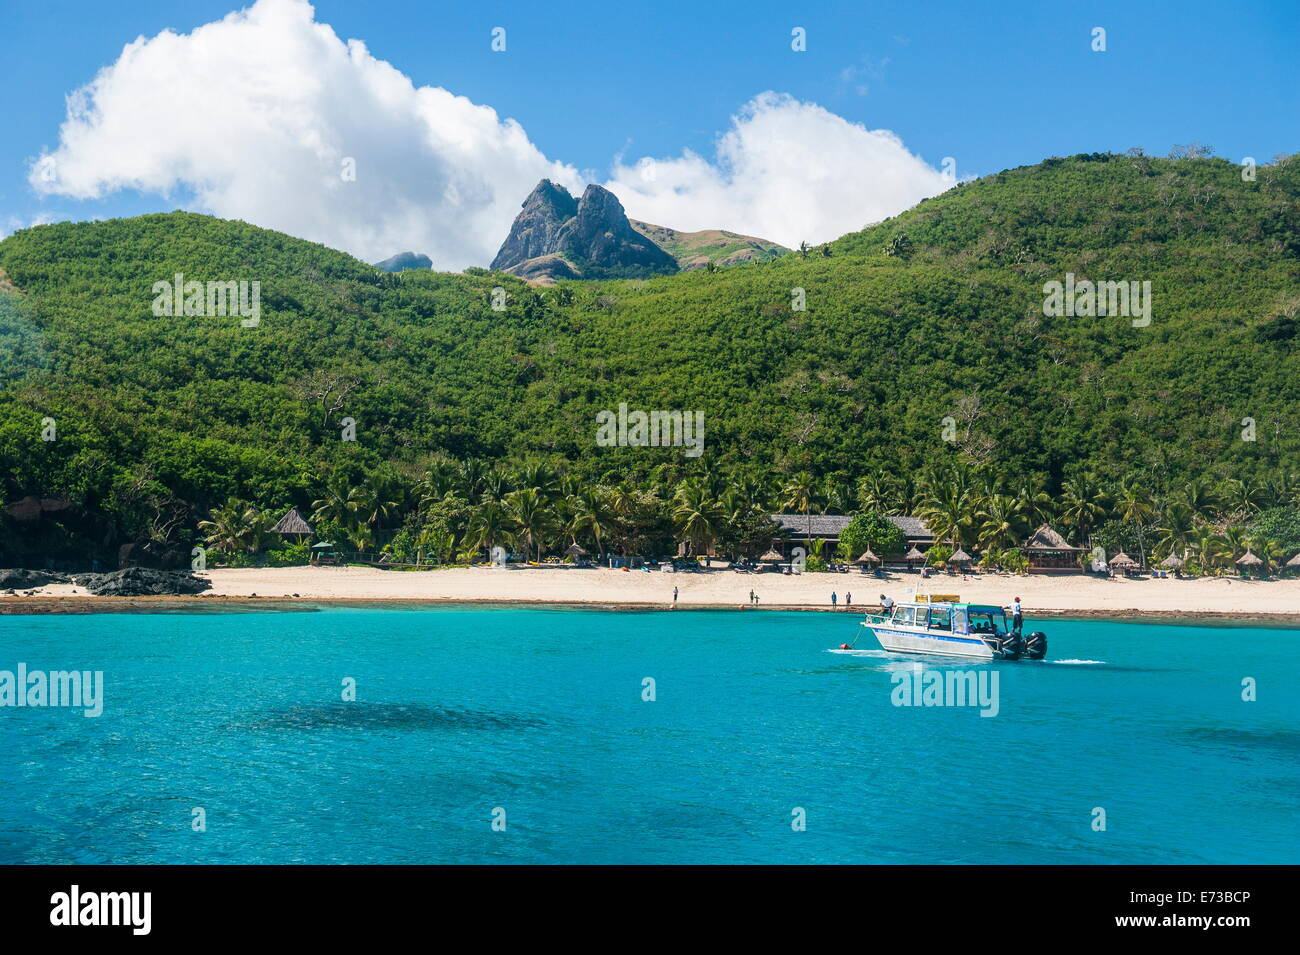 Yasawas, Fiji, South Pacific, Pacific - Stock Image